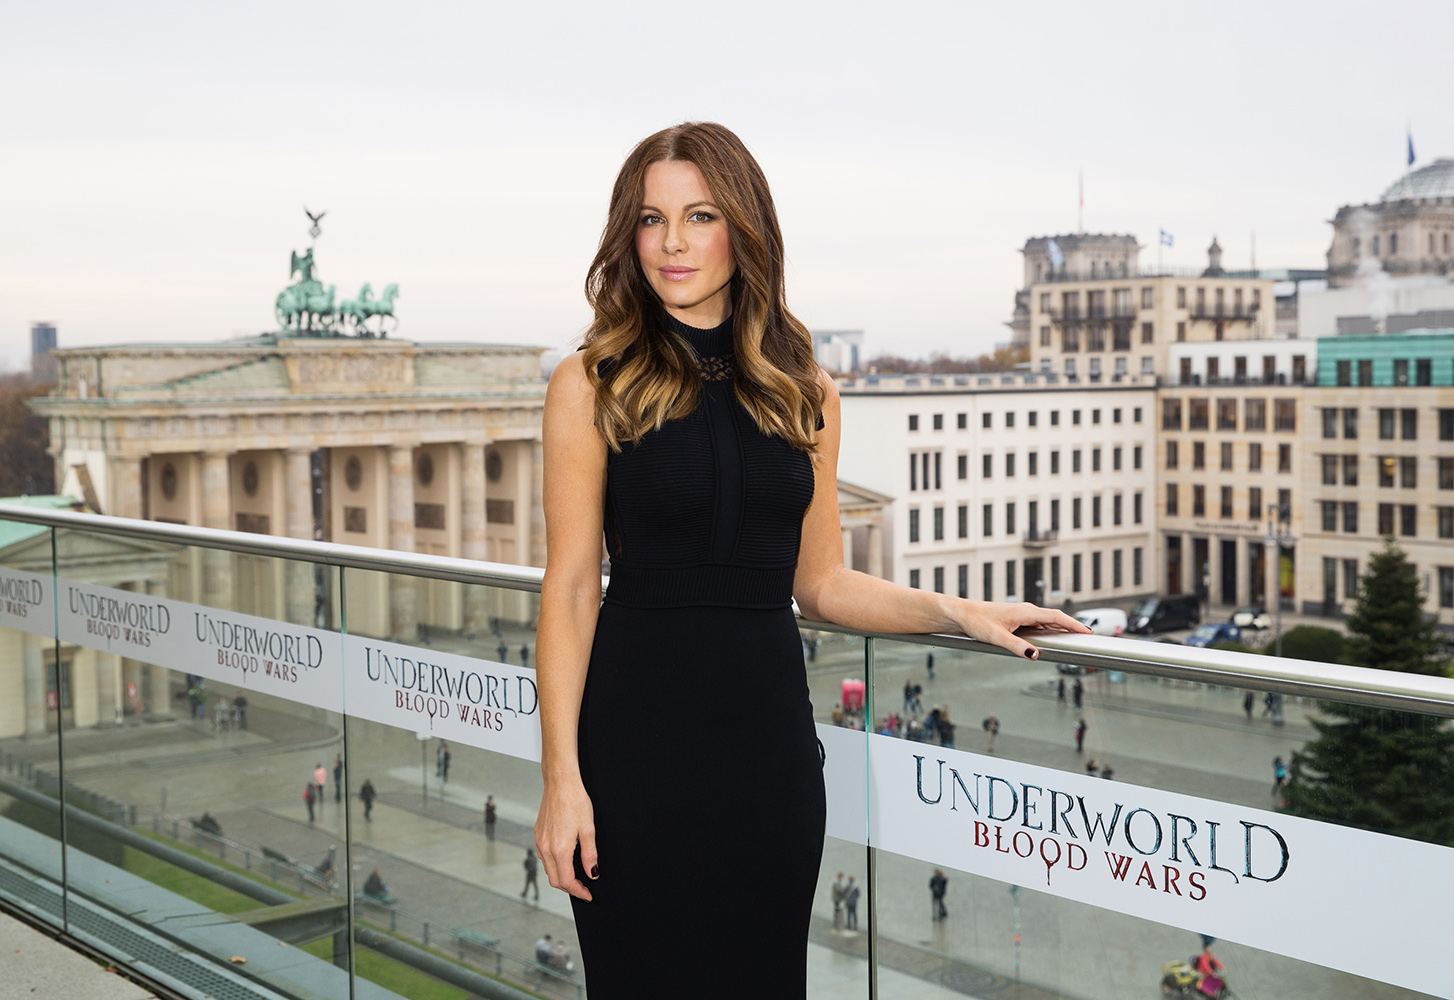 BERLIN, GERMANY - NOVEMBER 22:  Actress Kate Beckinsale attends the Berlin to photocall for 'Underworld: Blood Wars' wearing a dress by Elie Saab on the terrace at Akademie der Kuenste on November 22, 2016 in Berlin, Germany.  (Photo by Brian Dowling/Getty Images for Sony Pictures)